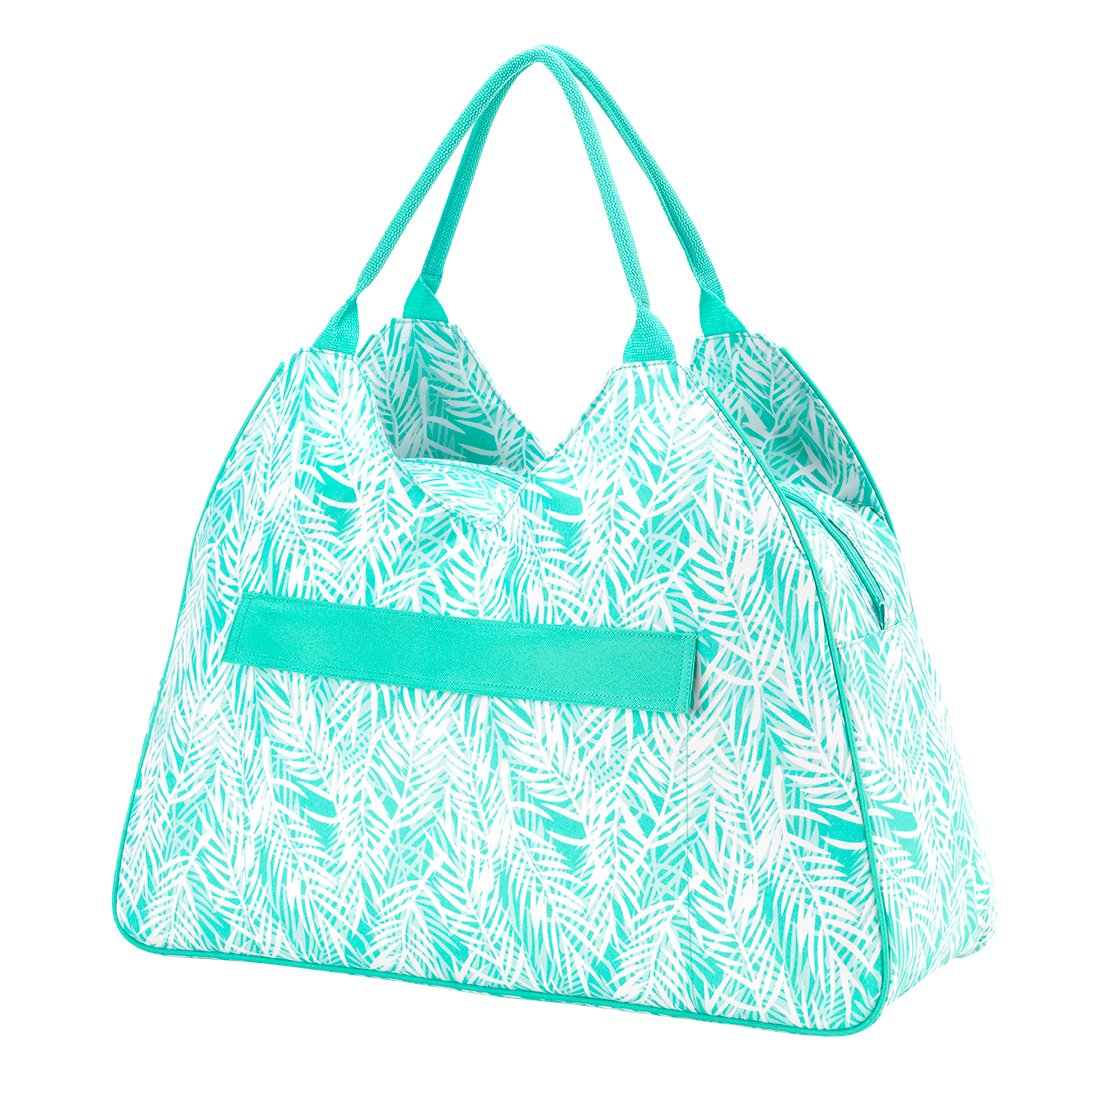 5fb09d7570a Amazon.com  Water Resistant Beach Bag with Inside Lining   Top Handle - 22